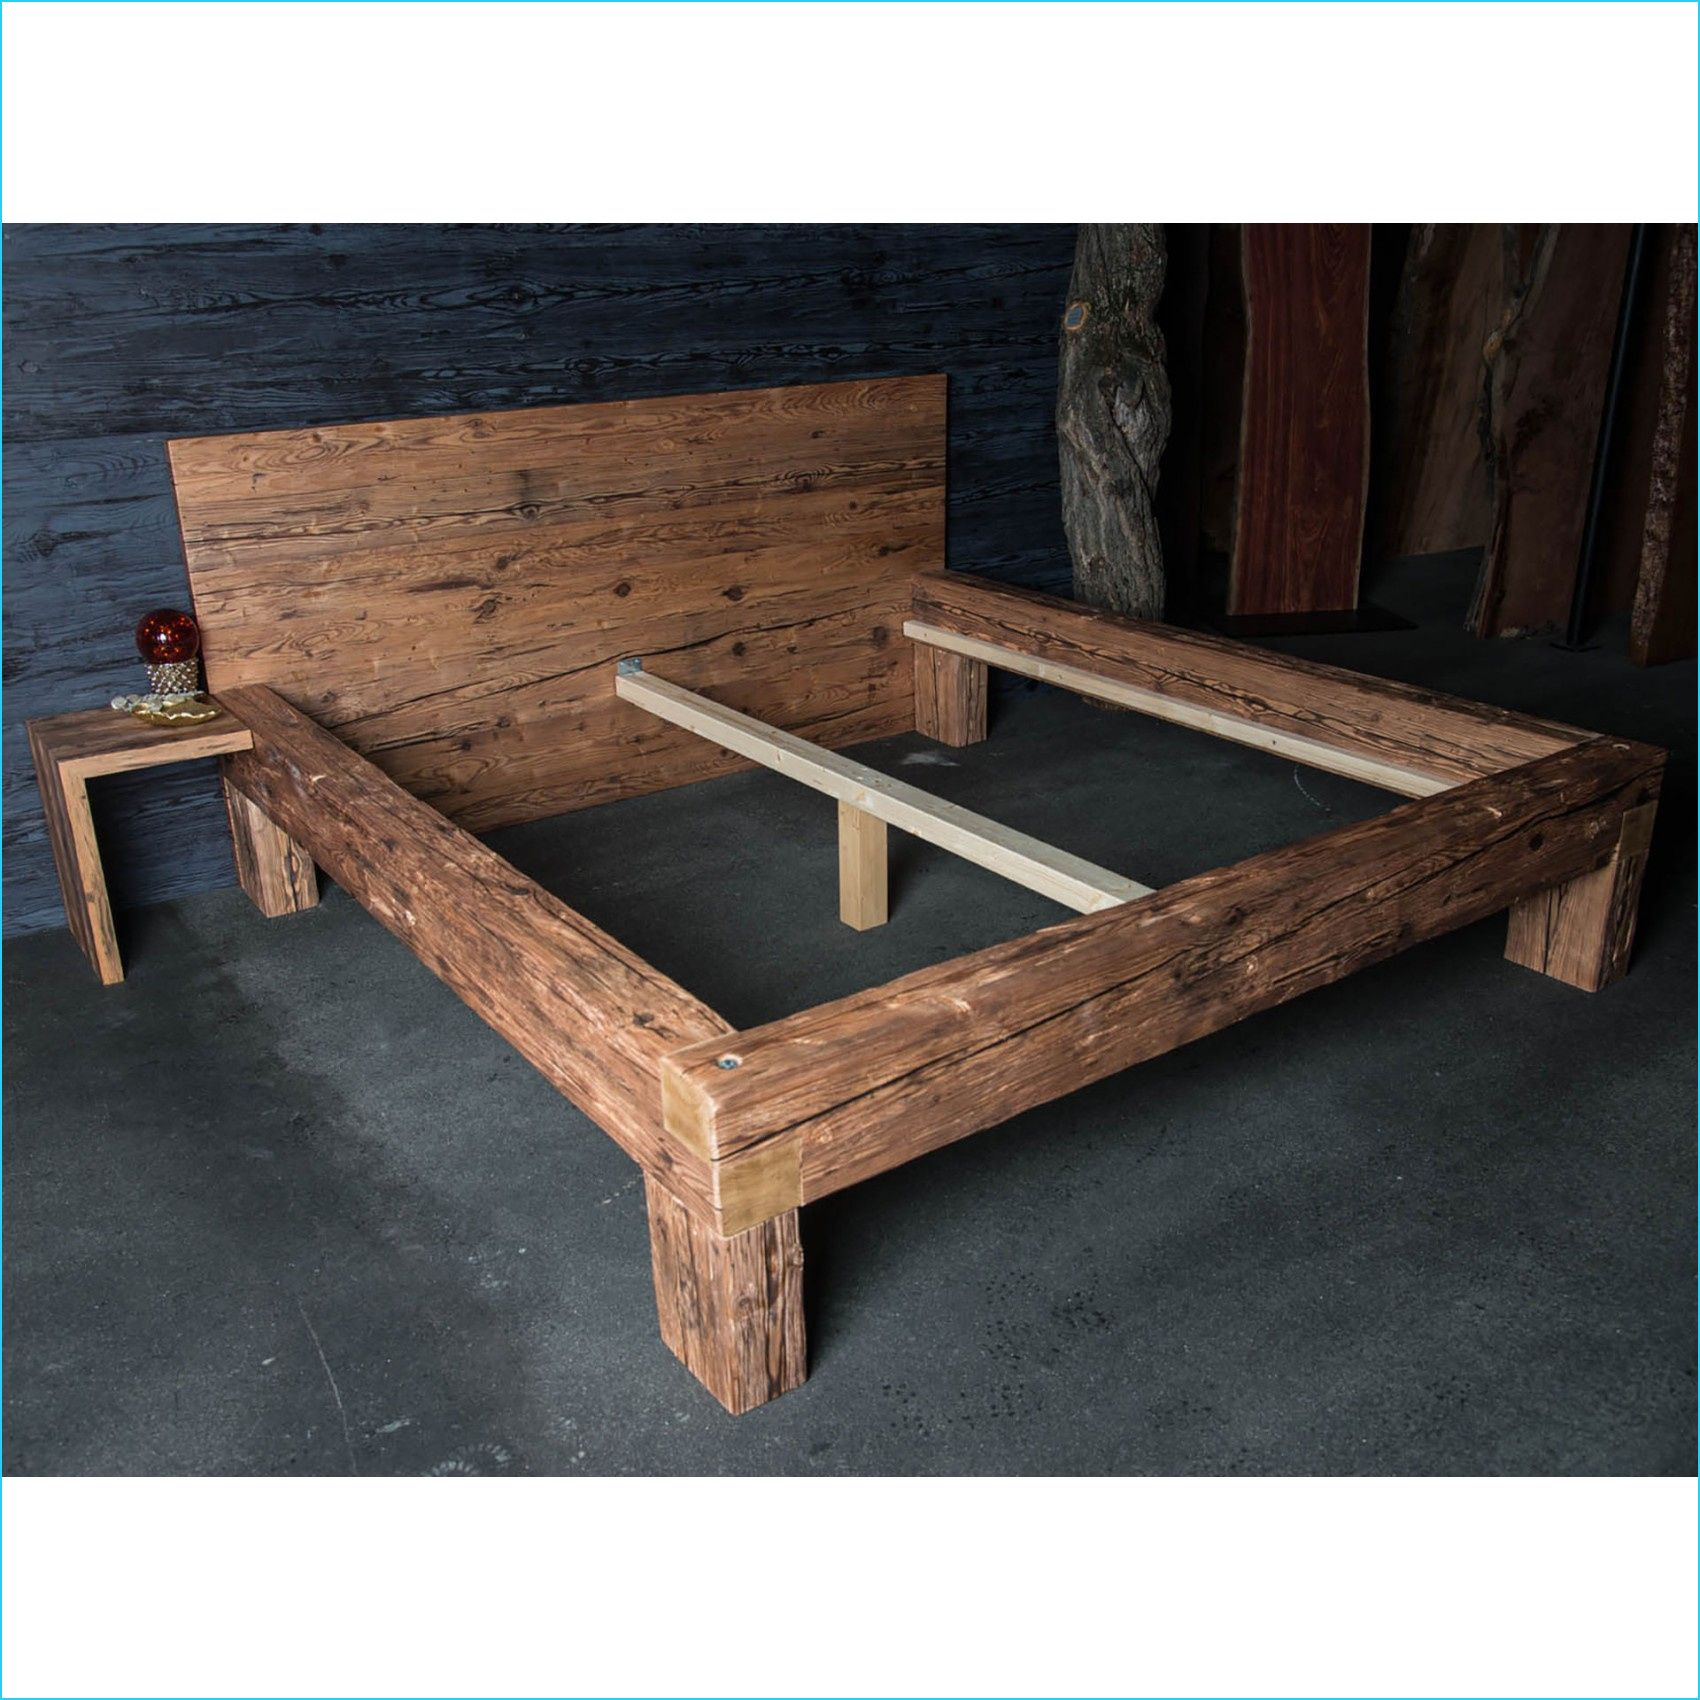 8 Aktuell Massives Holzbett in 2020 Rustic wood bed, Bed